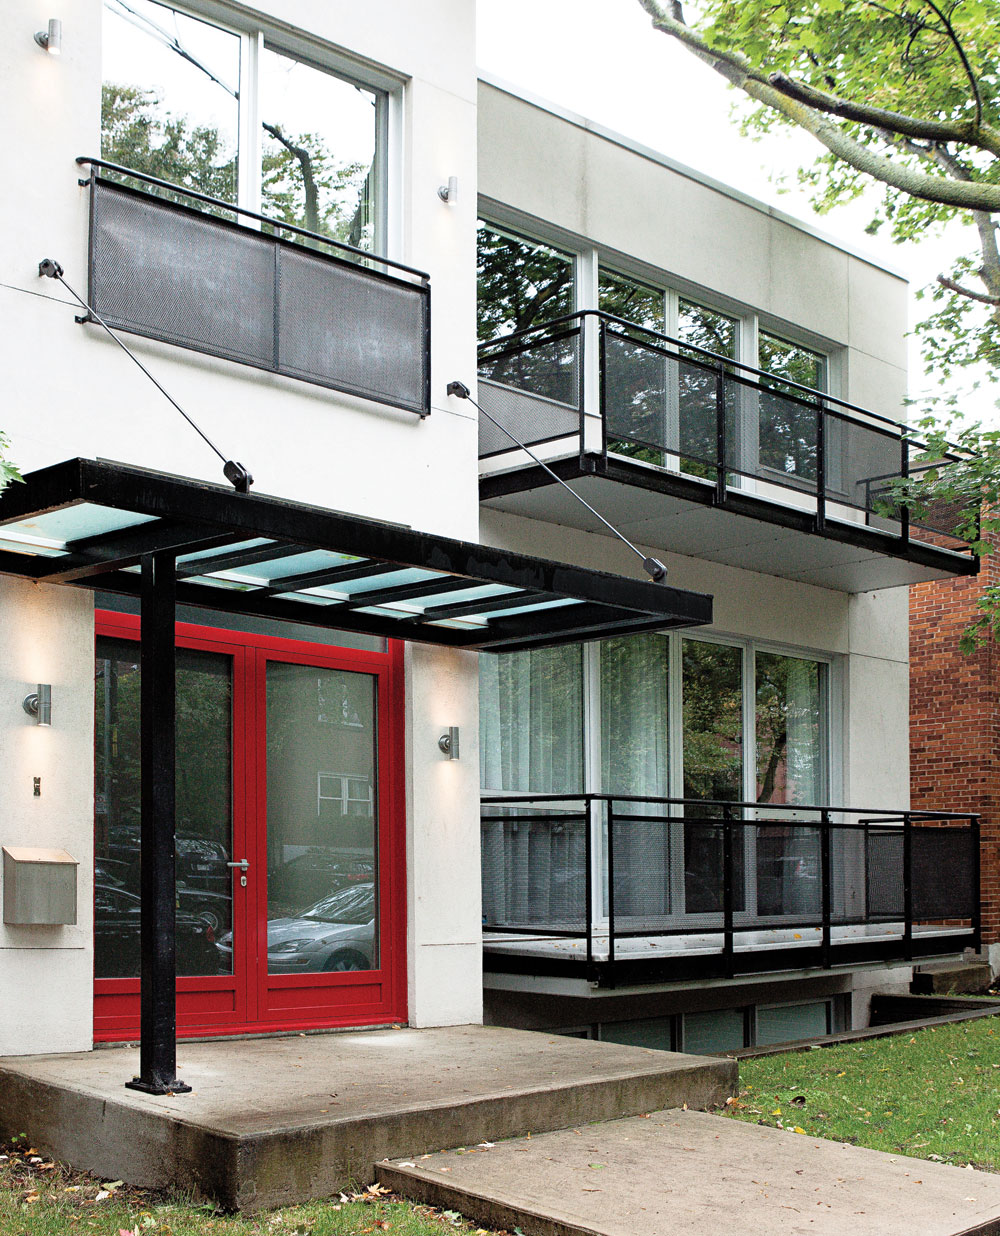 It was an office building, and still is in part, because the lawyer-owner has turned it into his office and his home. Vinyl siding with a strong presence of steel decorates the façade and a red glass door is intended as a nod to the other house he left behind.